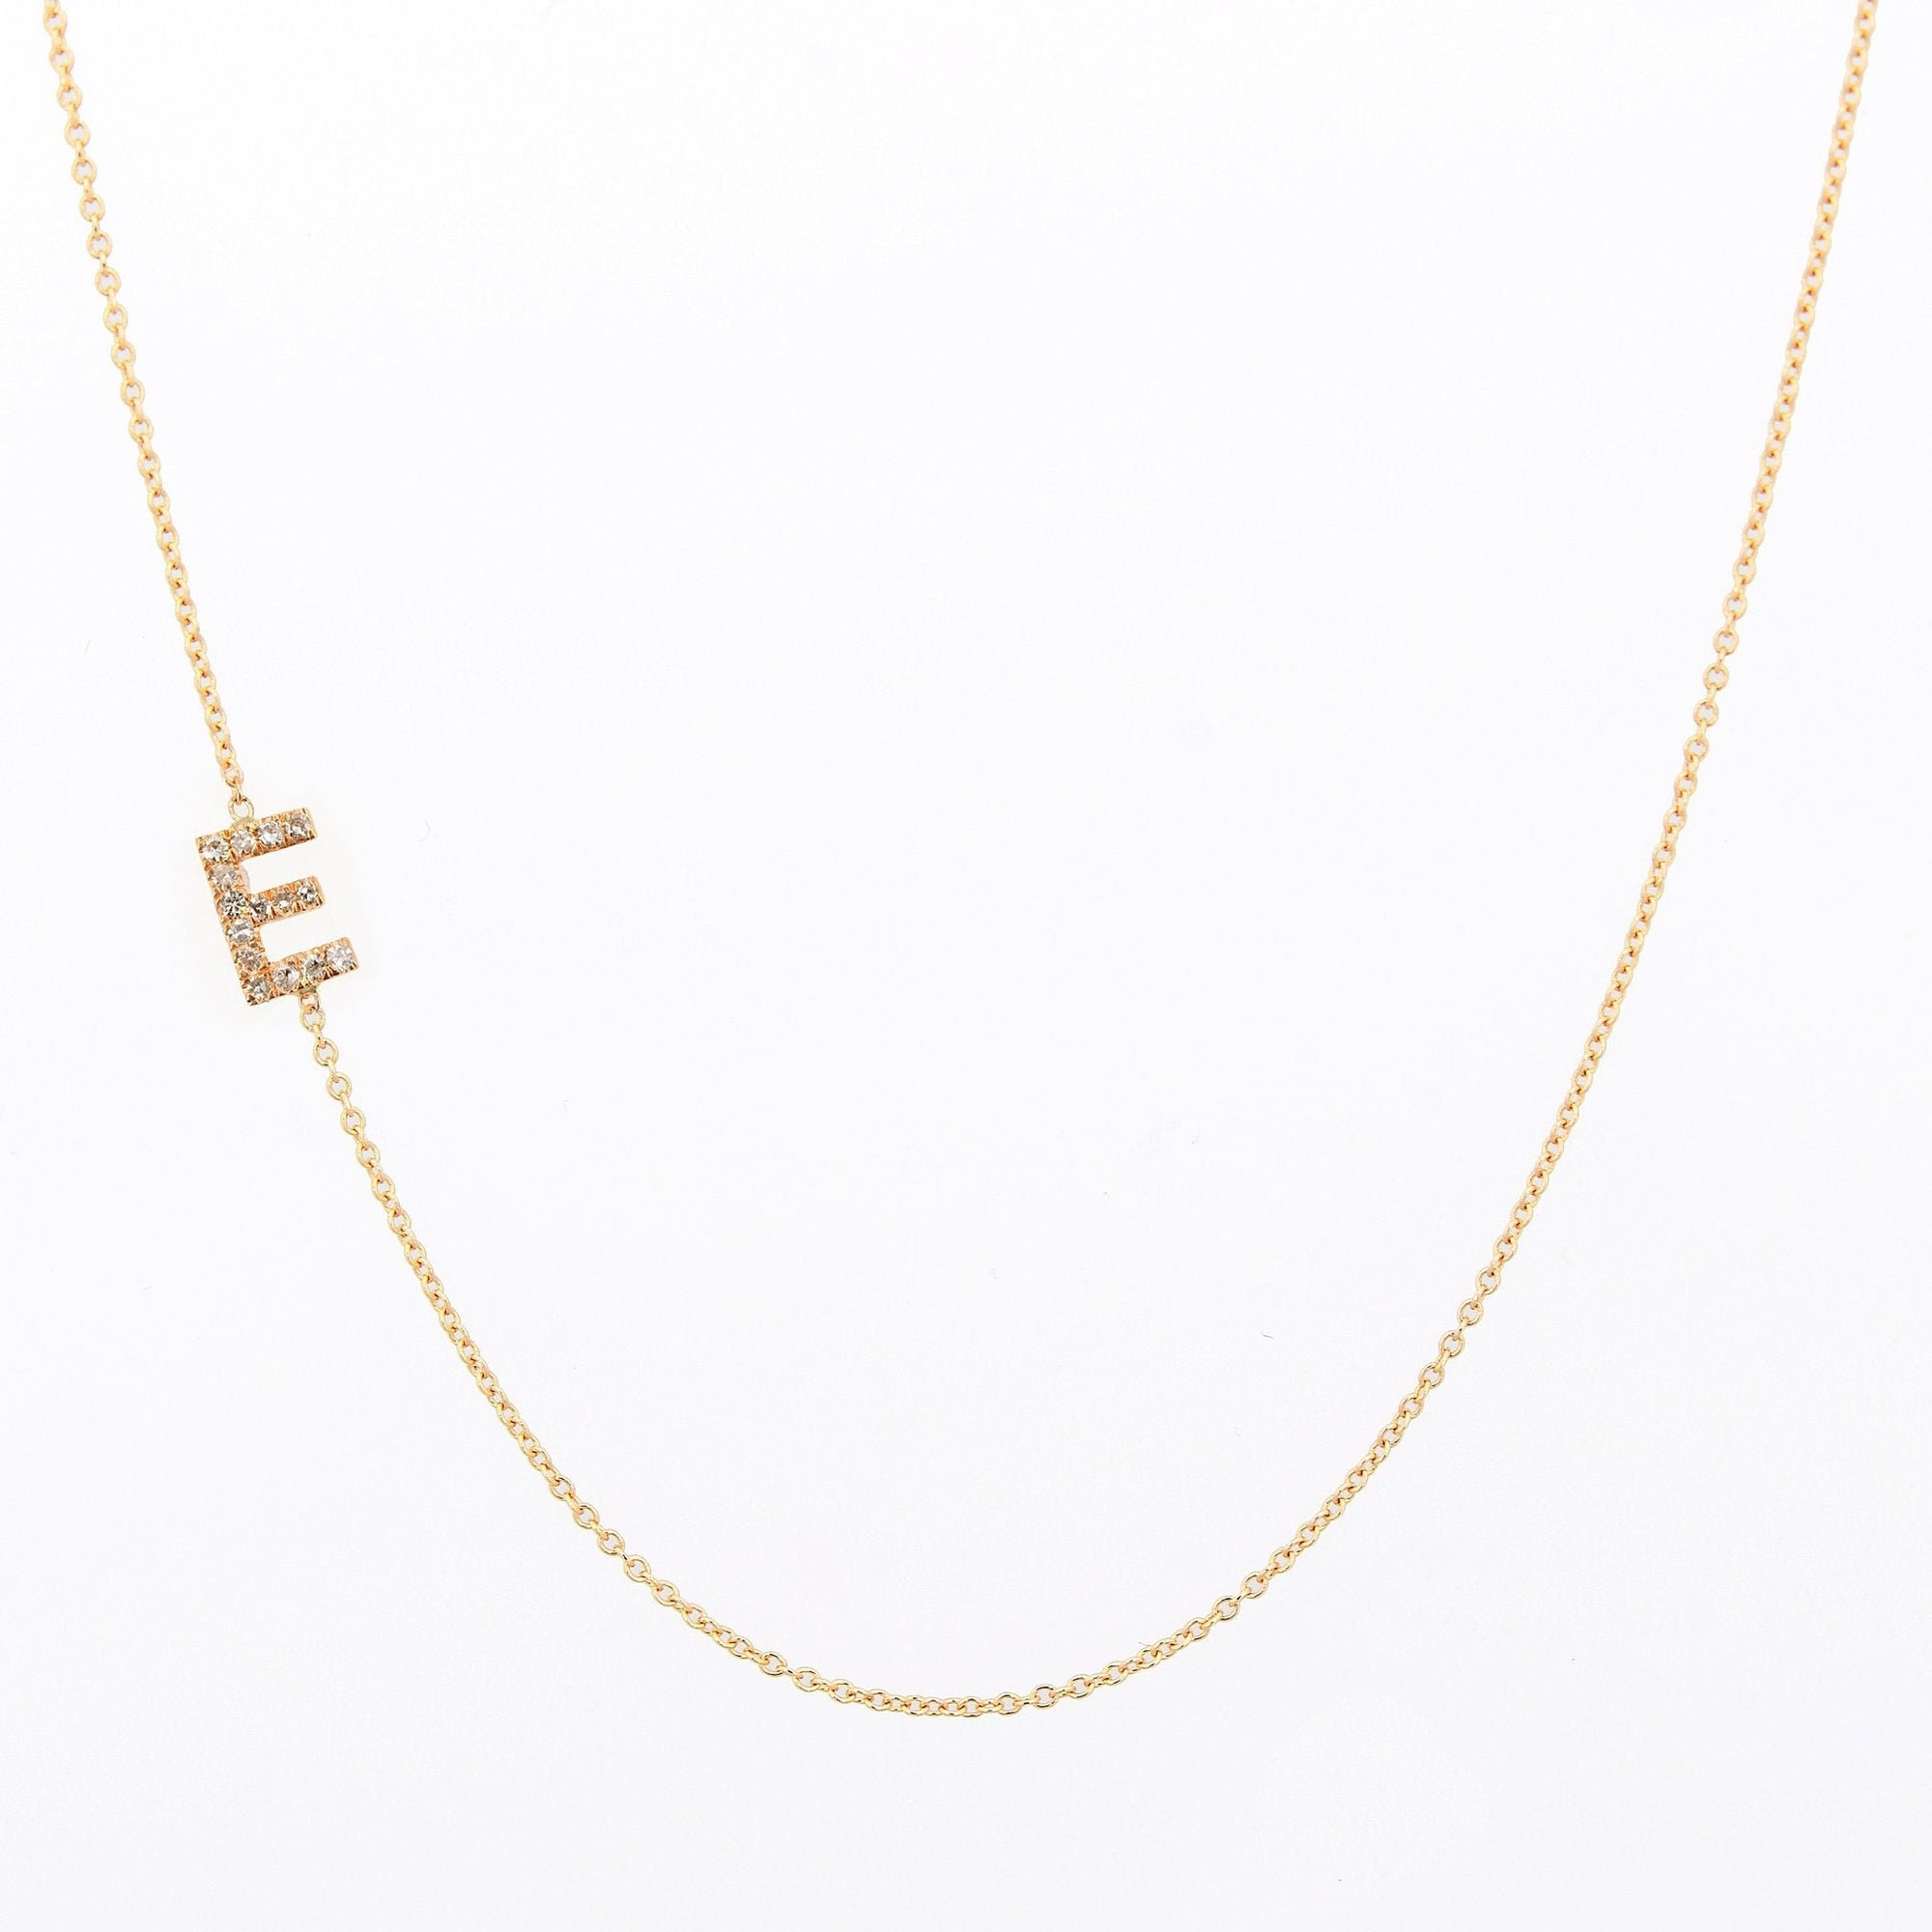 Diamond Sideways Necklace, Kids Initial Necklace